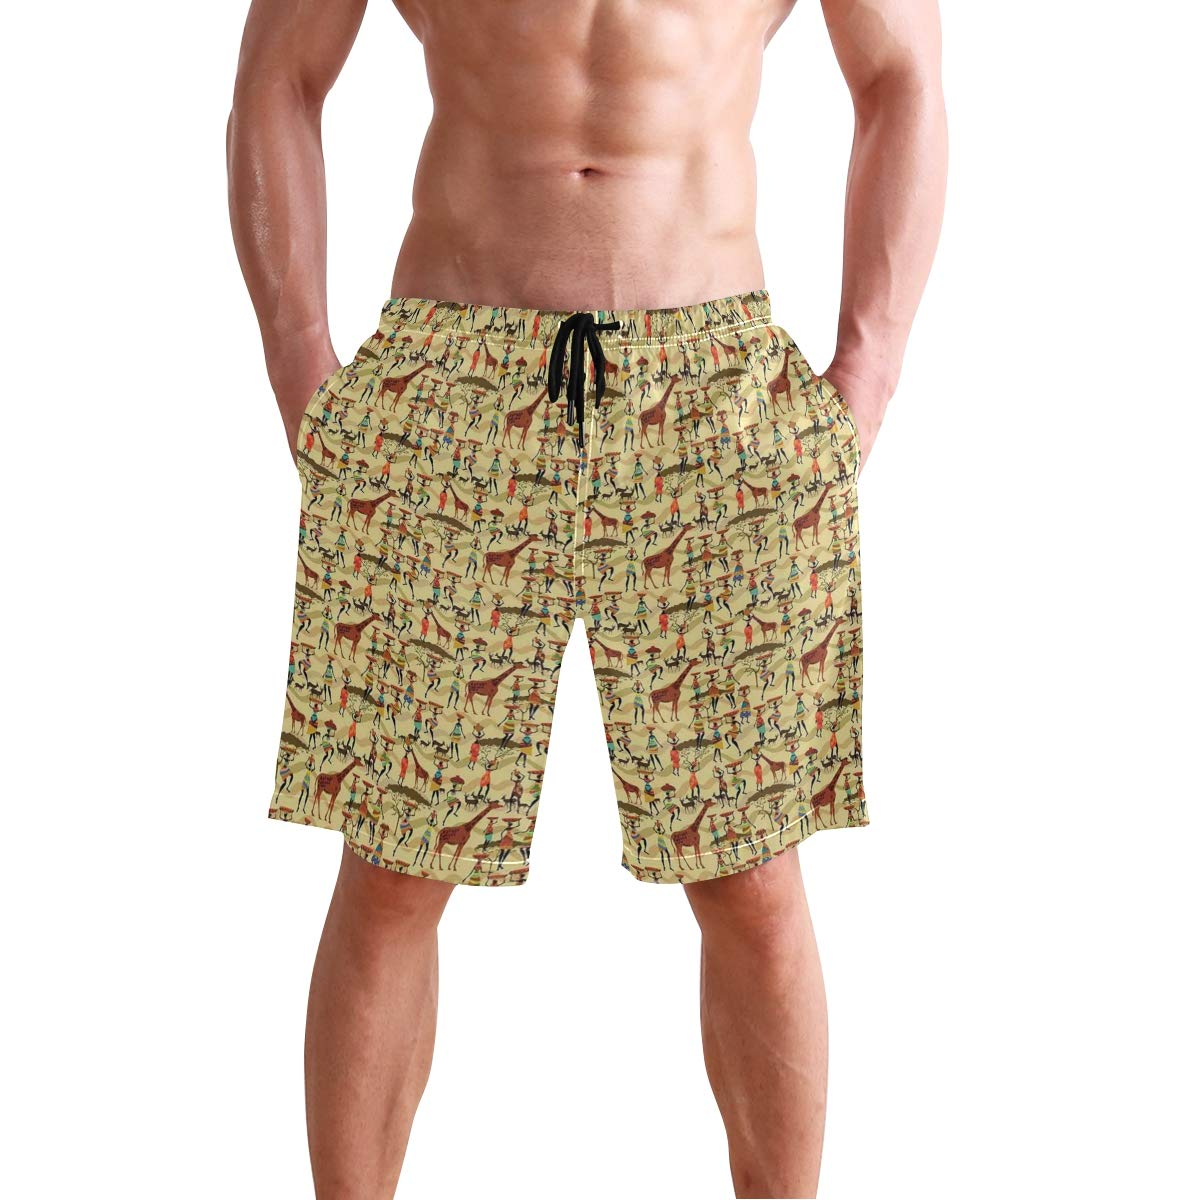 COVASA Mens Summer ShortsWoman Silhouette with Colorful Clothes and Pots Deer